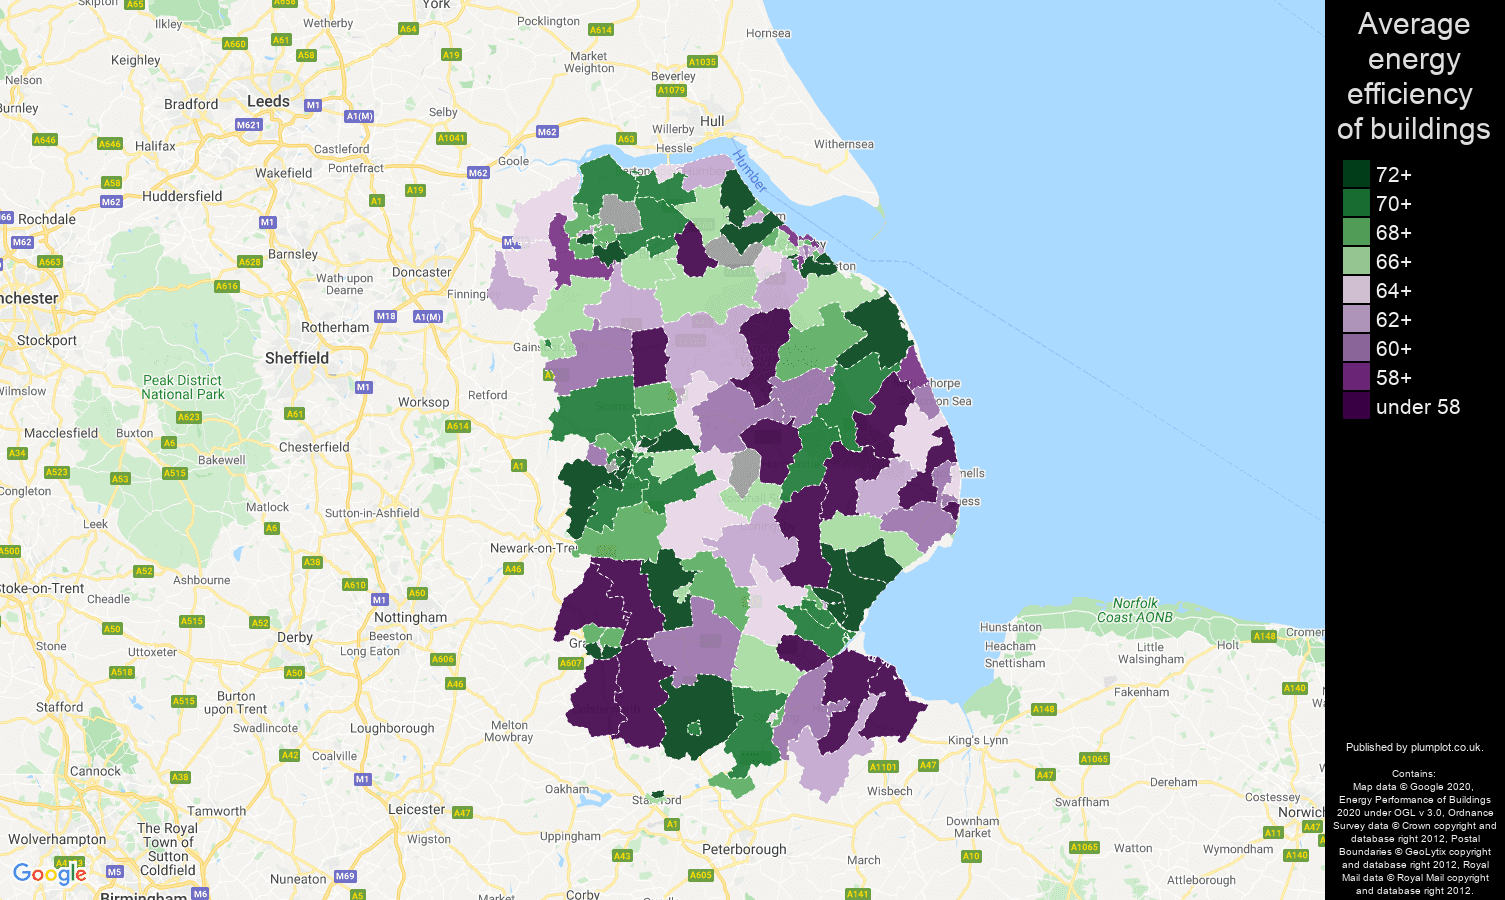 Lincolnshire map of energy efficiency of flats